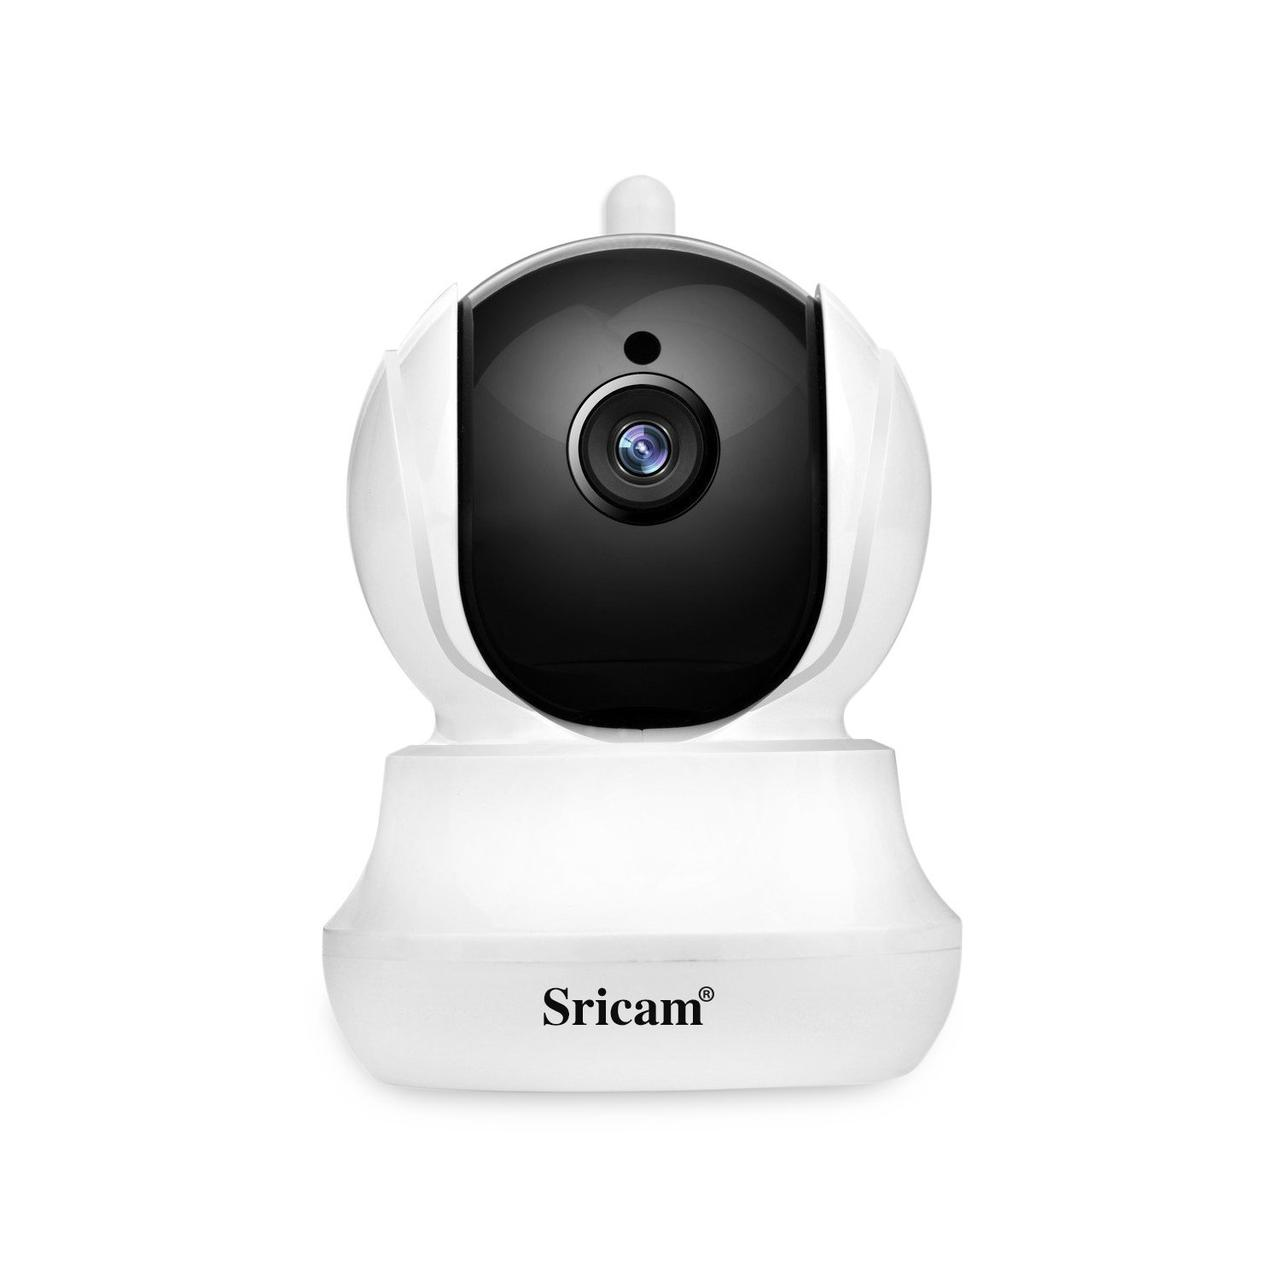 "Sricam SP020 беспроводная 720P IP камера Pan & Tilt Home Security PTZ IR Веб-камера для ночного видения WiFi - Интернет-магазин ""Нежданчик"" в Харькове"